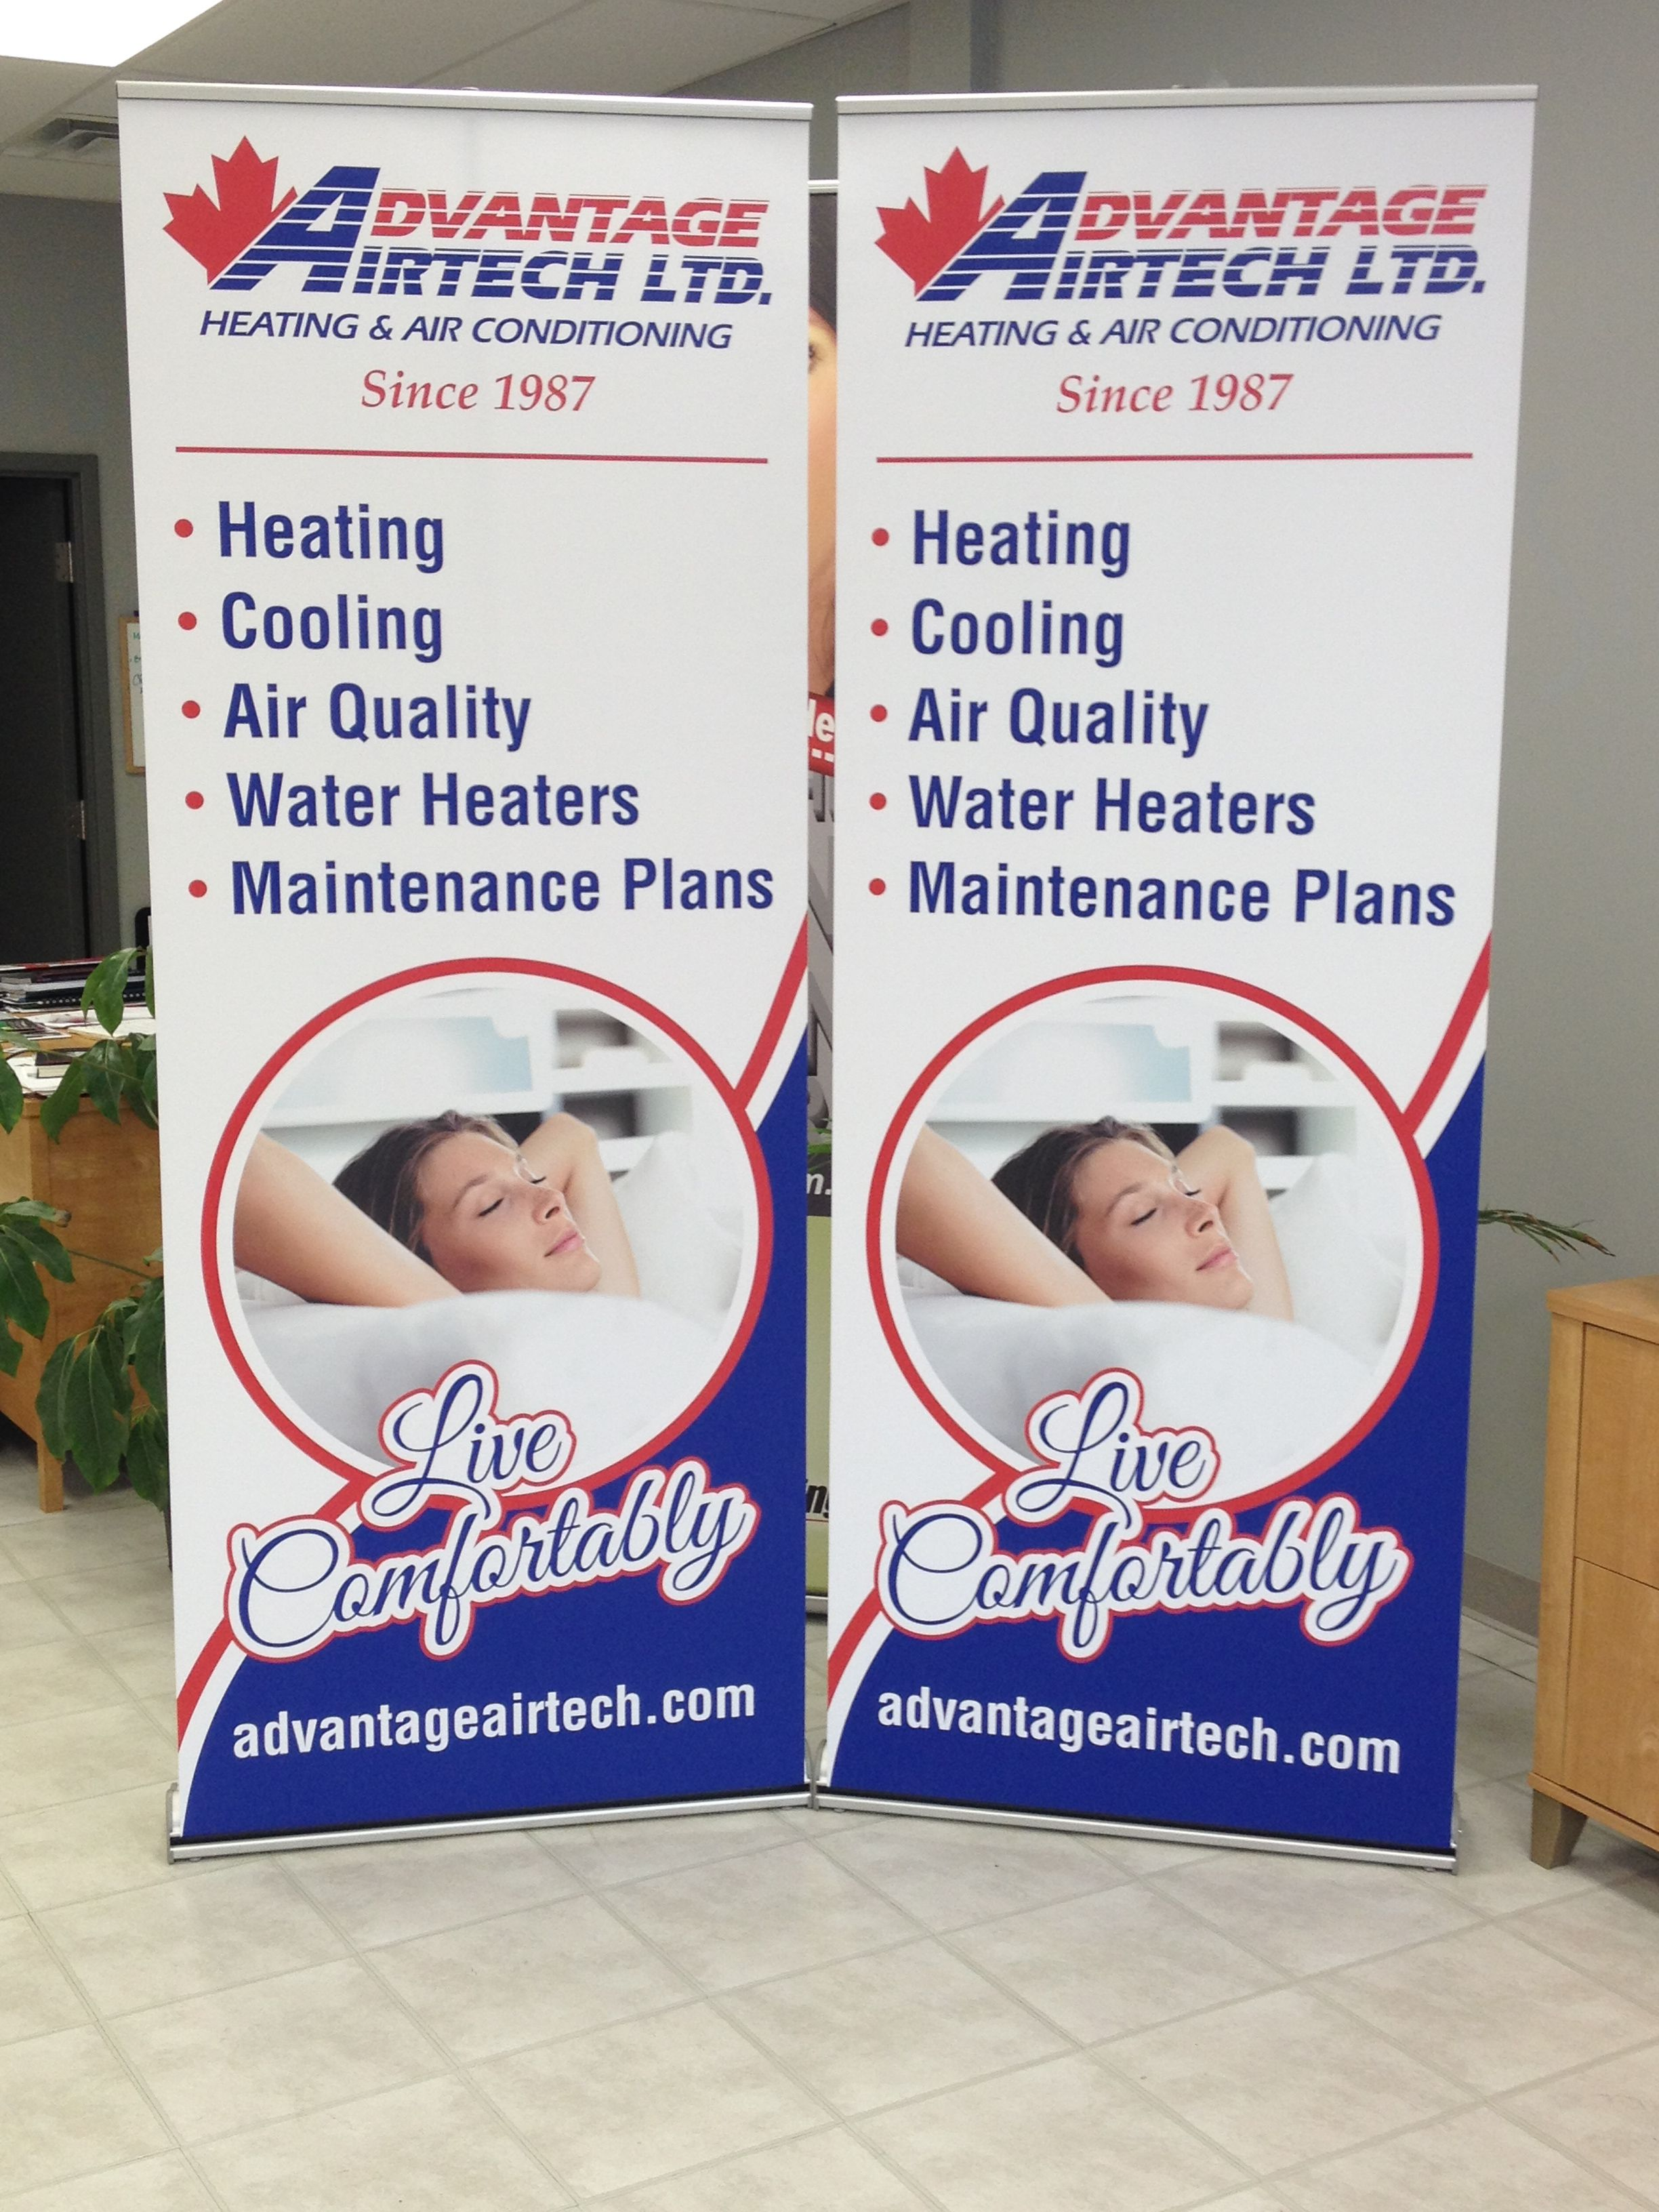 2 Retractable Banners Completed For Advantage Airtech To Match